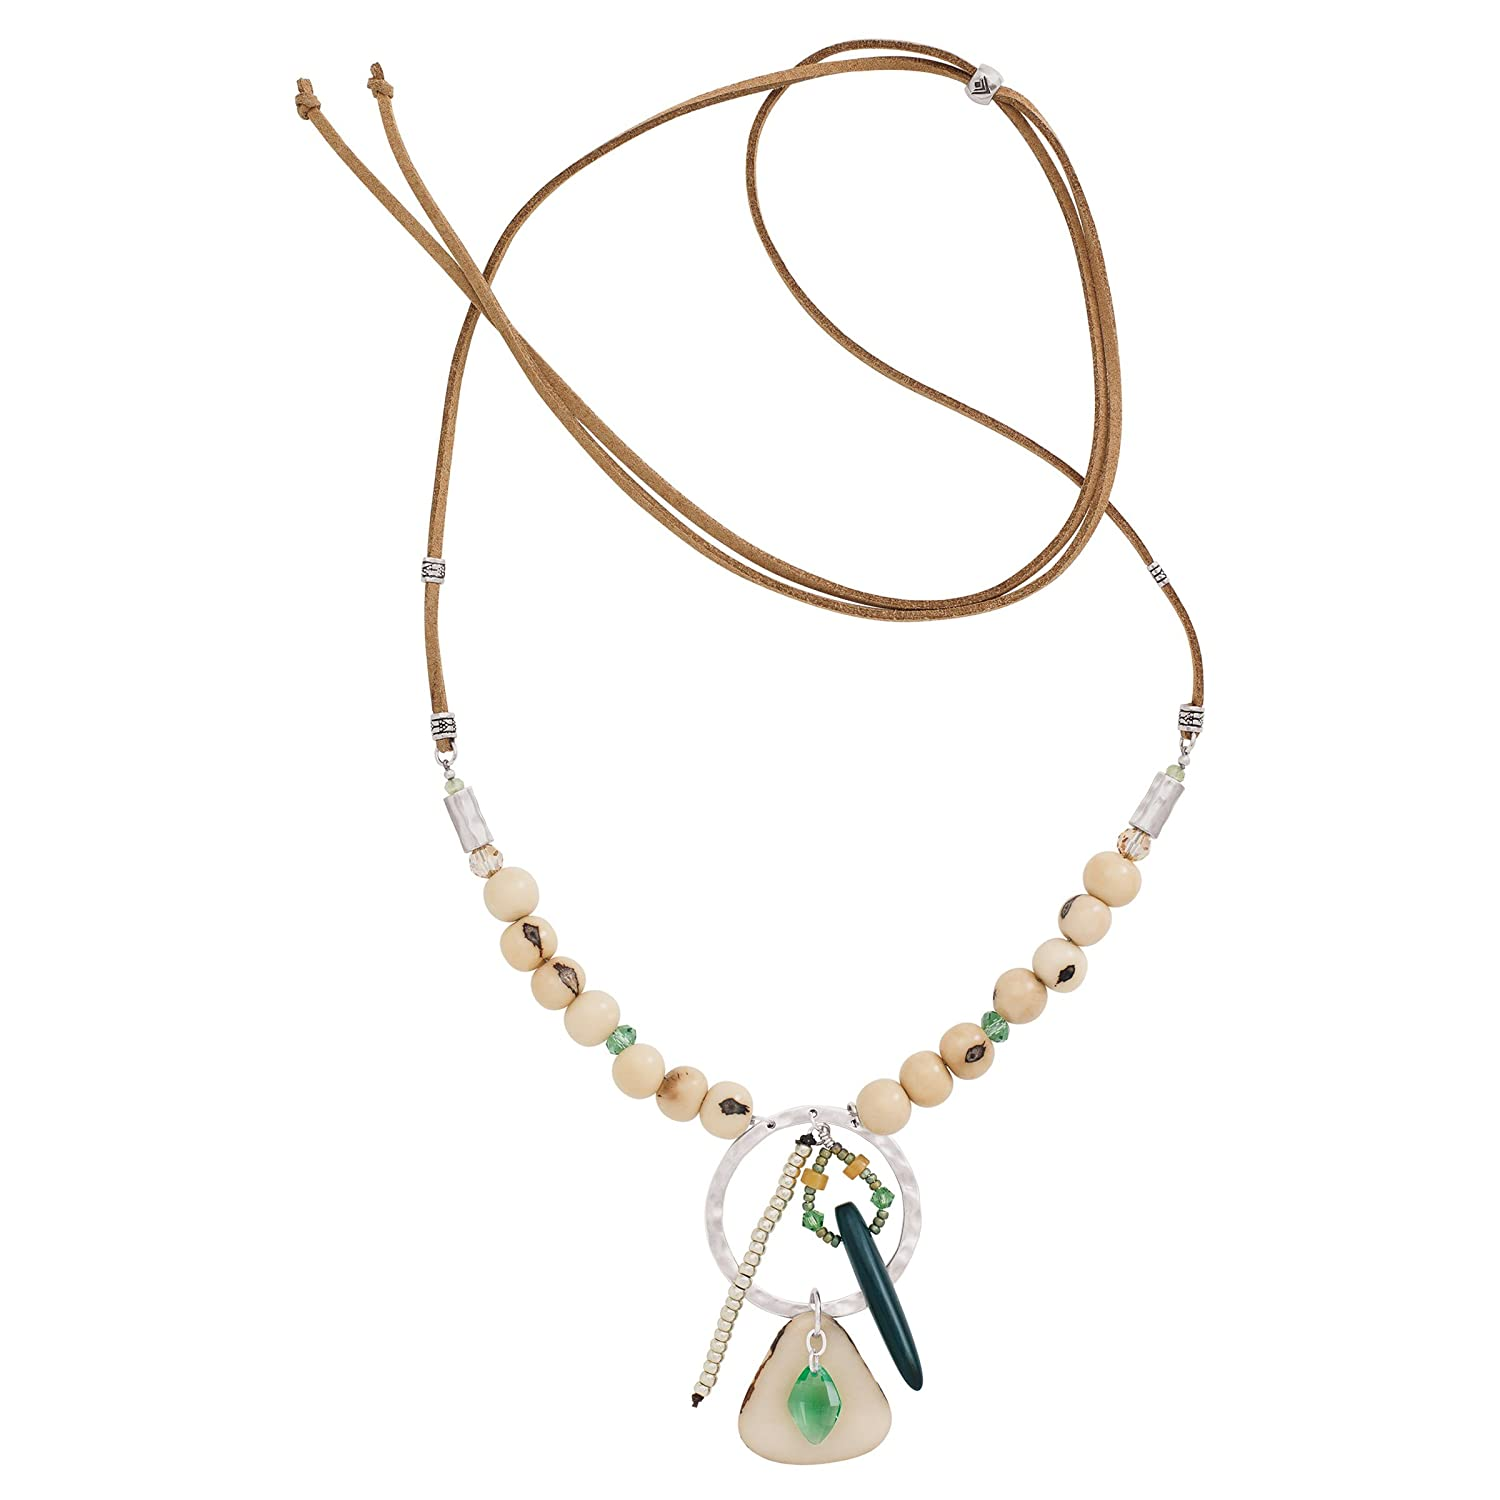 Silpada Tropical Palms Tagua Nut Acai Seed Necklace with Swarovski Crystals in Sterling Silver Cord